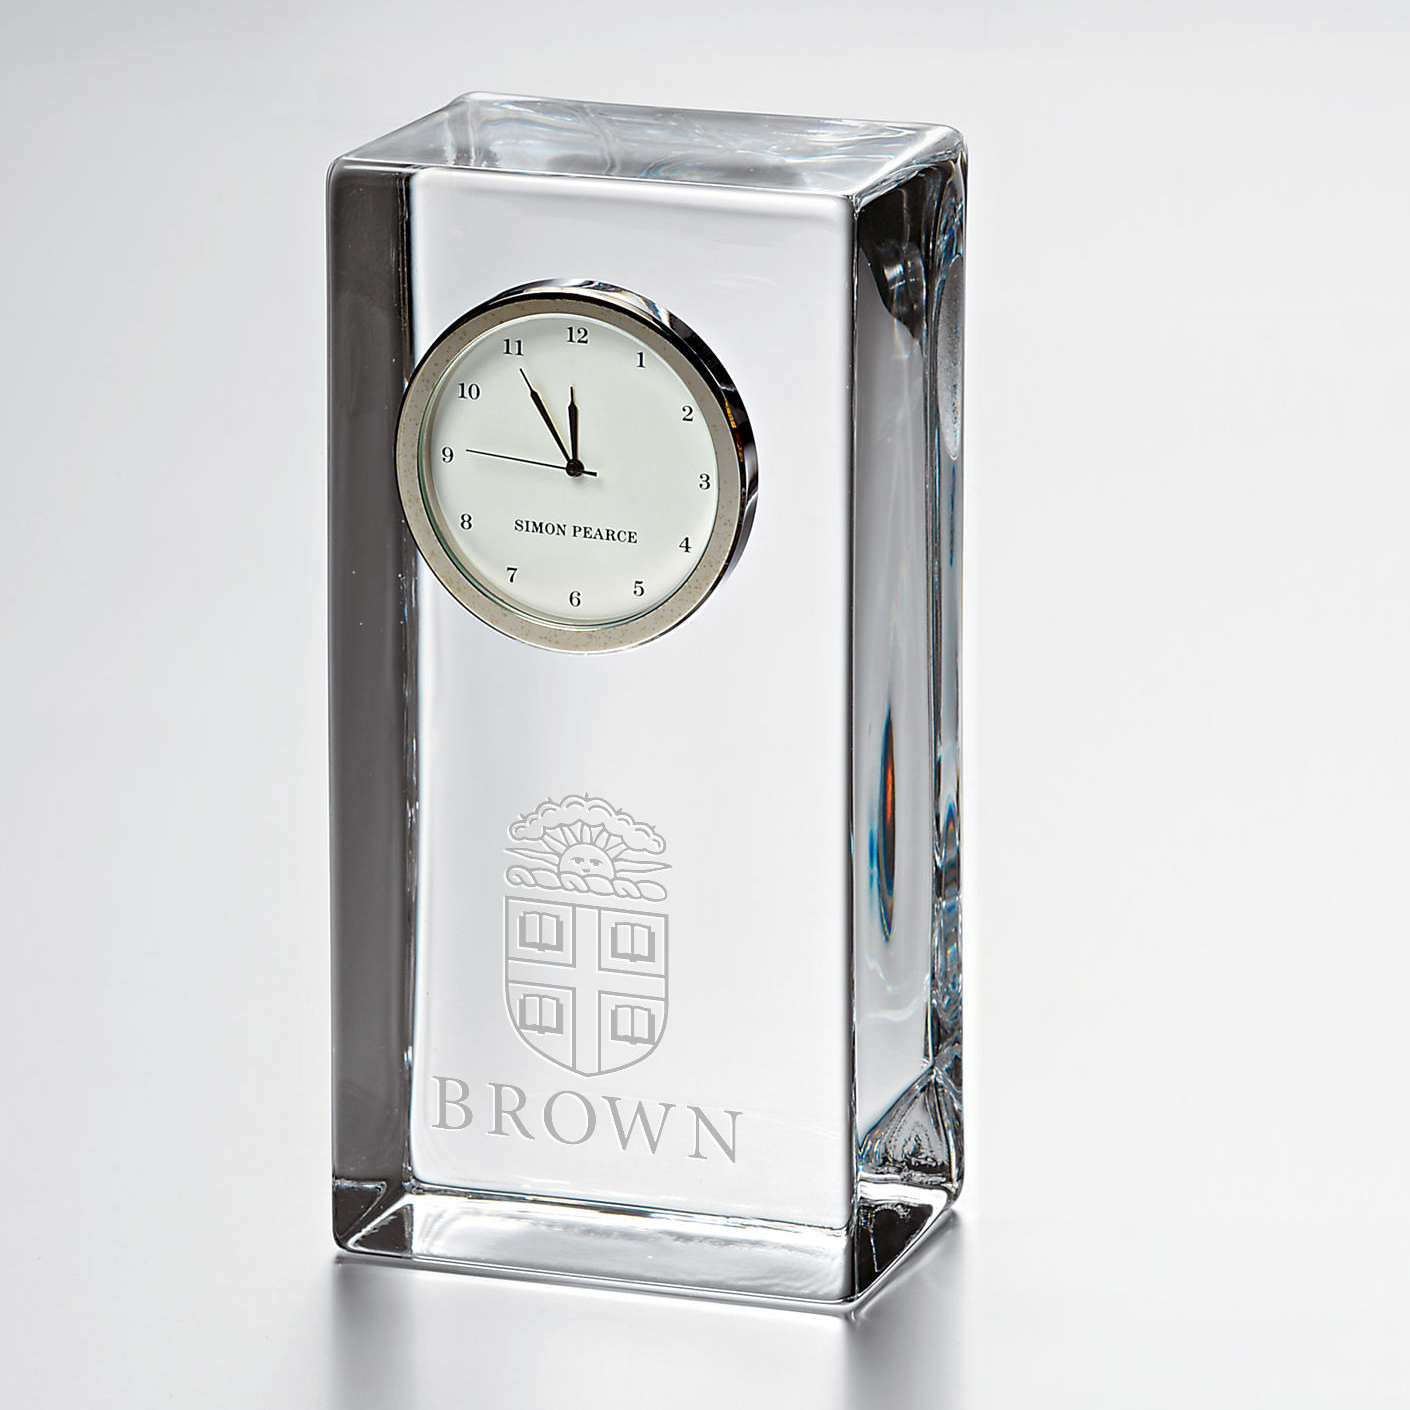 Brown Tall Desk Clock by Simon Pearce